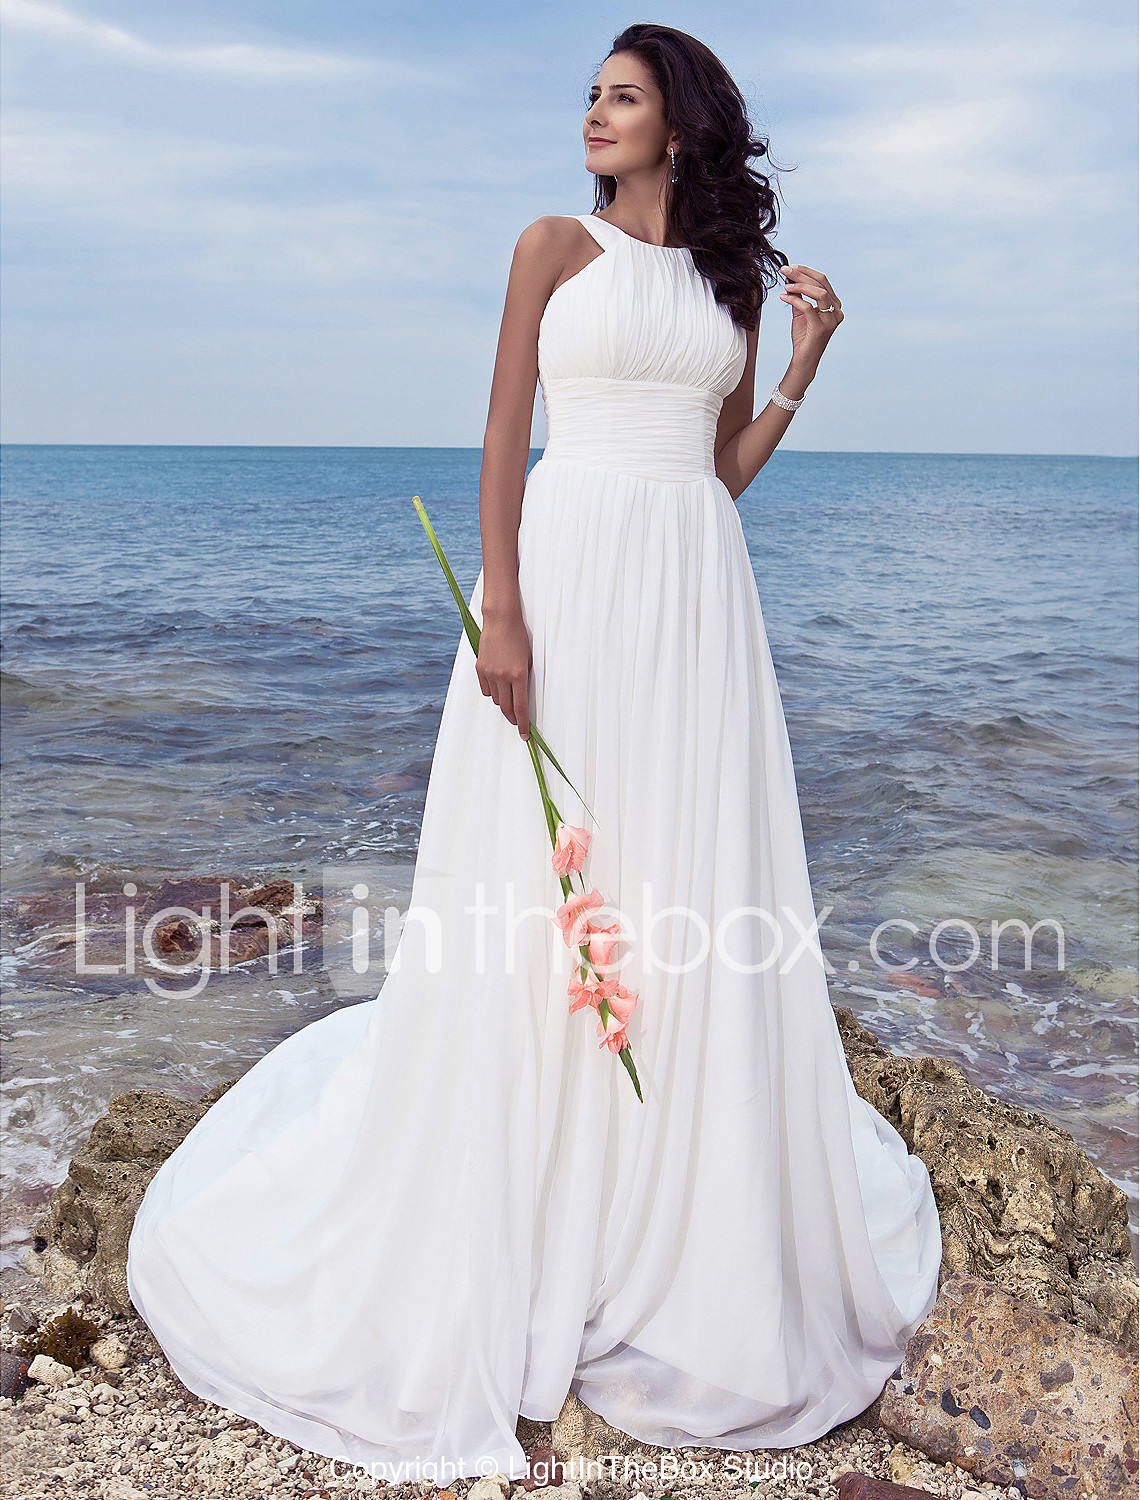 Wedding Wedding Dresses Pictures cheap wedding dresses online for 2017 lanting a line petite plus sizes dress classic timeless